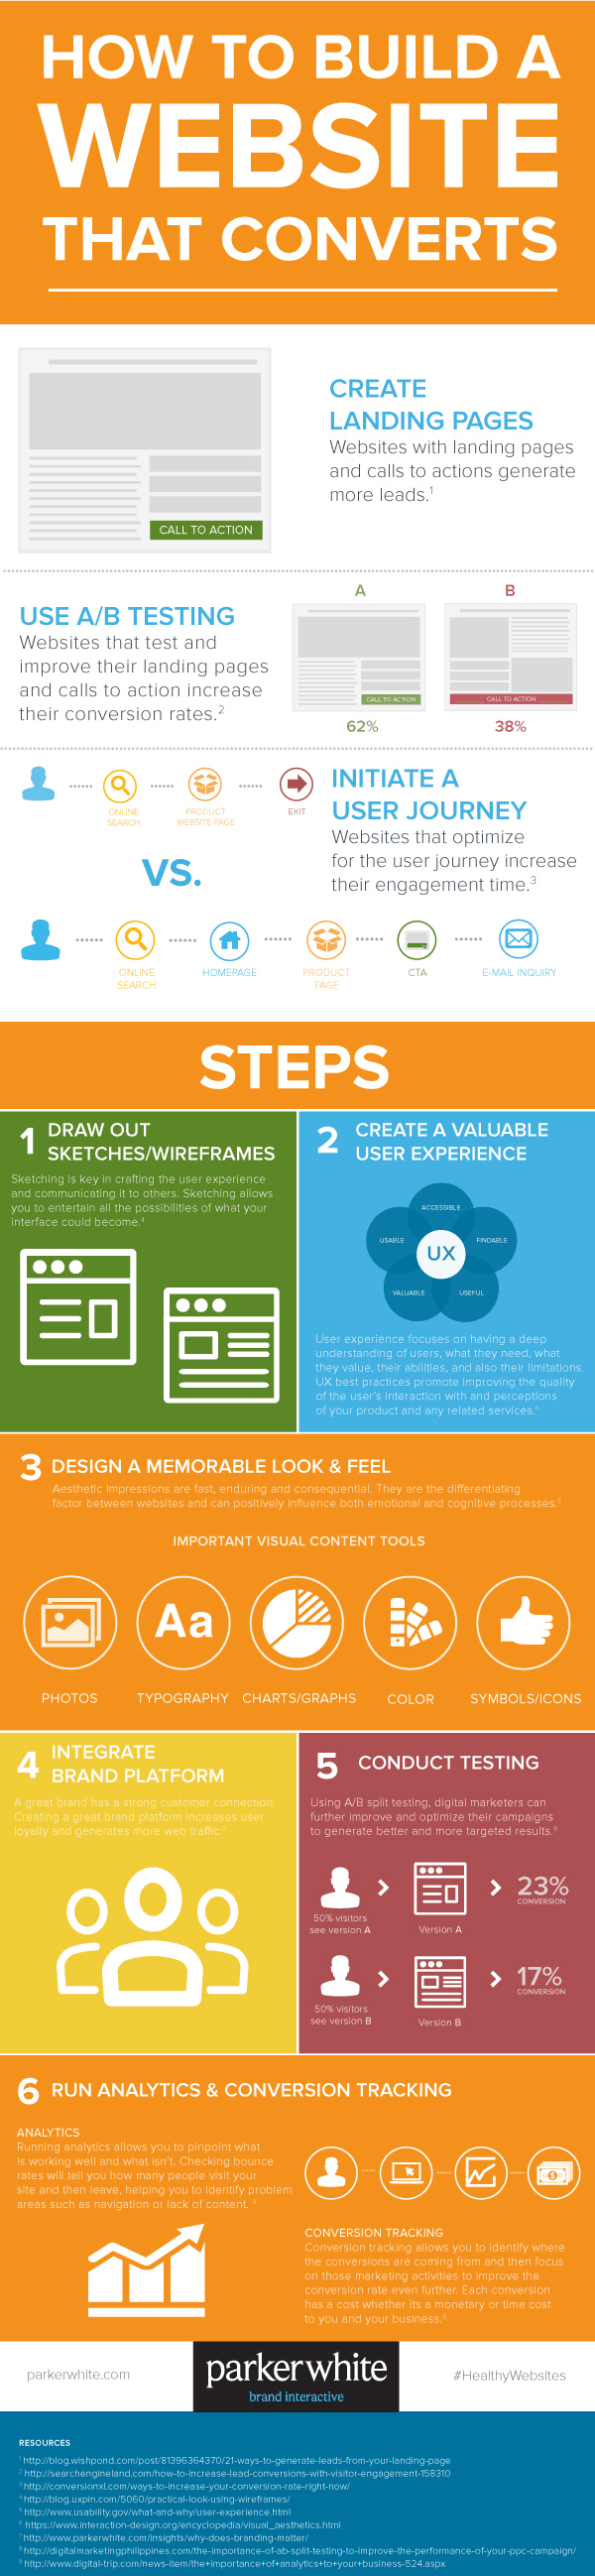 Infographic outlines essential web design considerations